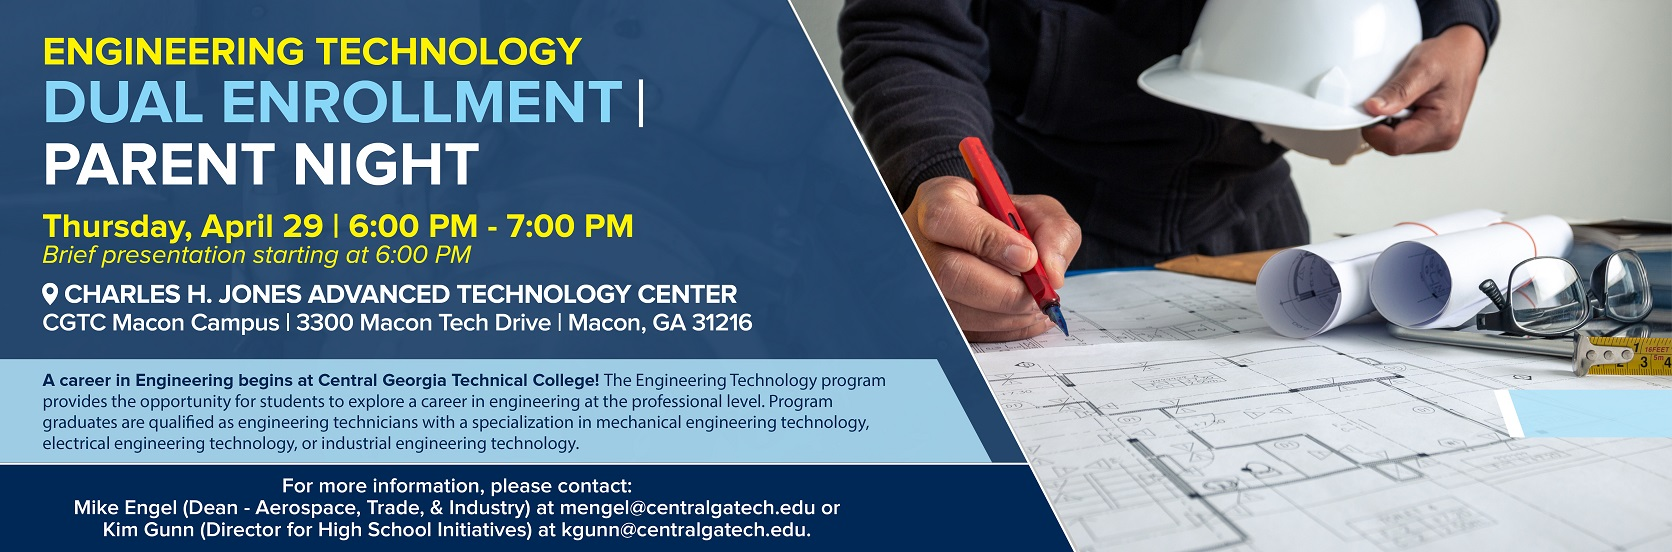 Dual Enrollment Engineering Technology Parent Night. Tuesday, April 29, 2021.